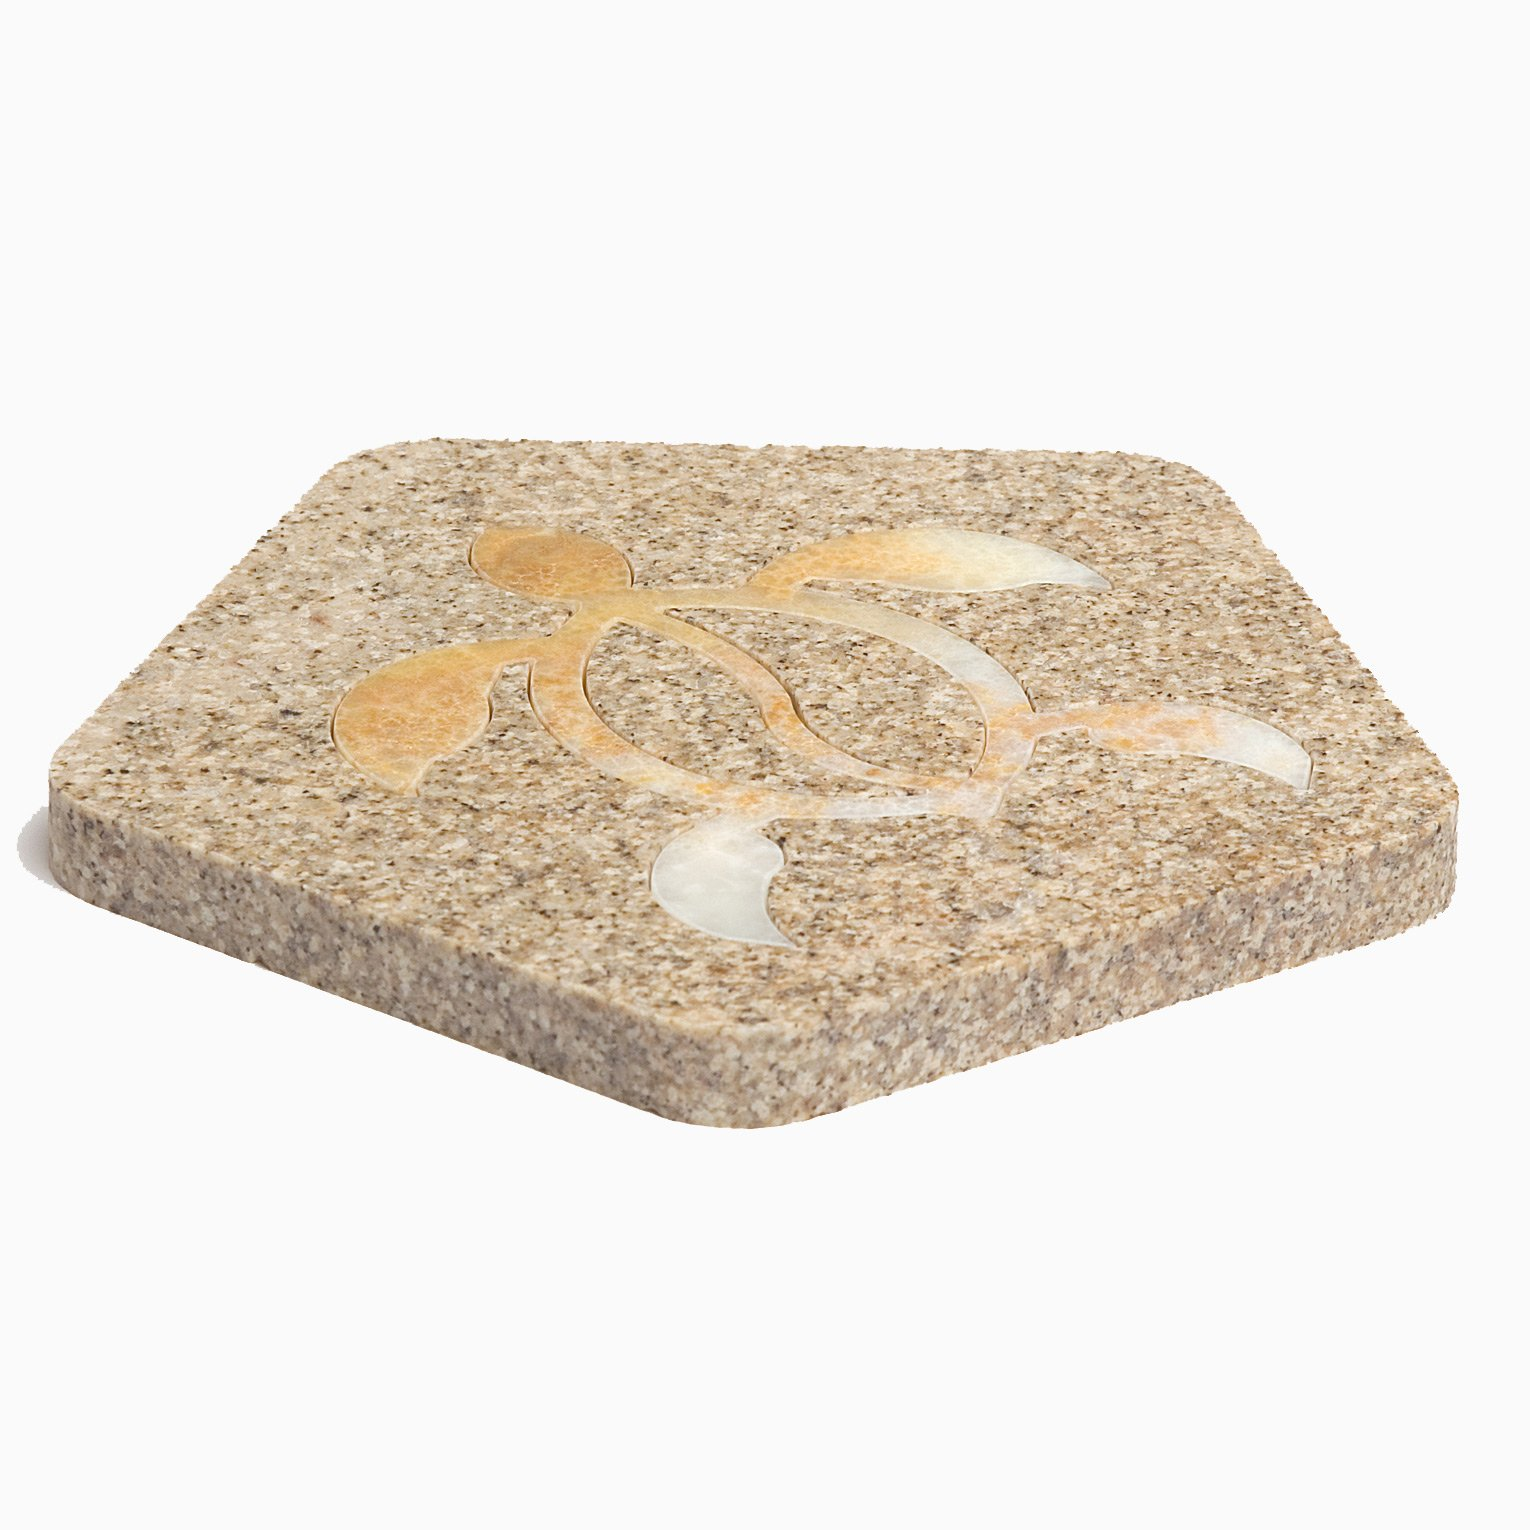 stone with turtle shape insert